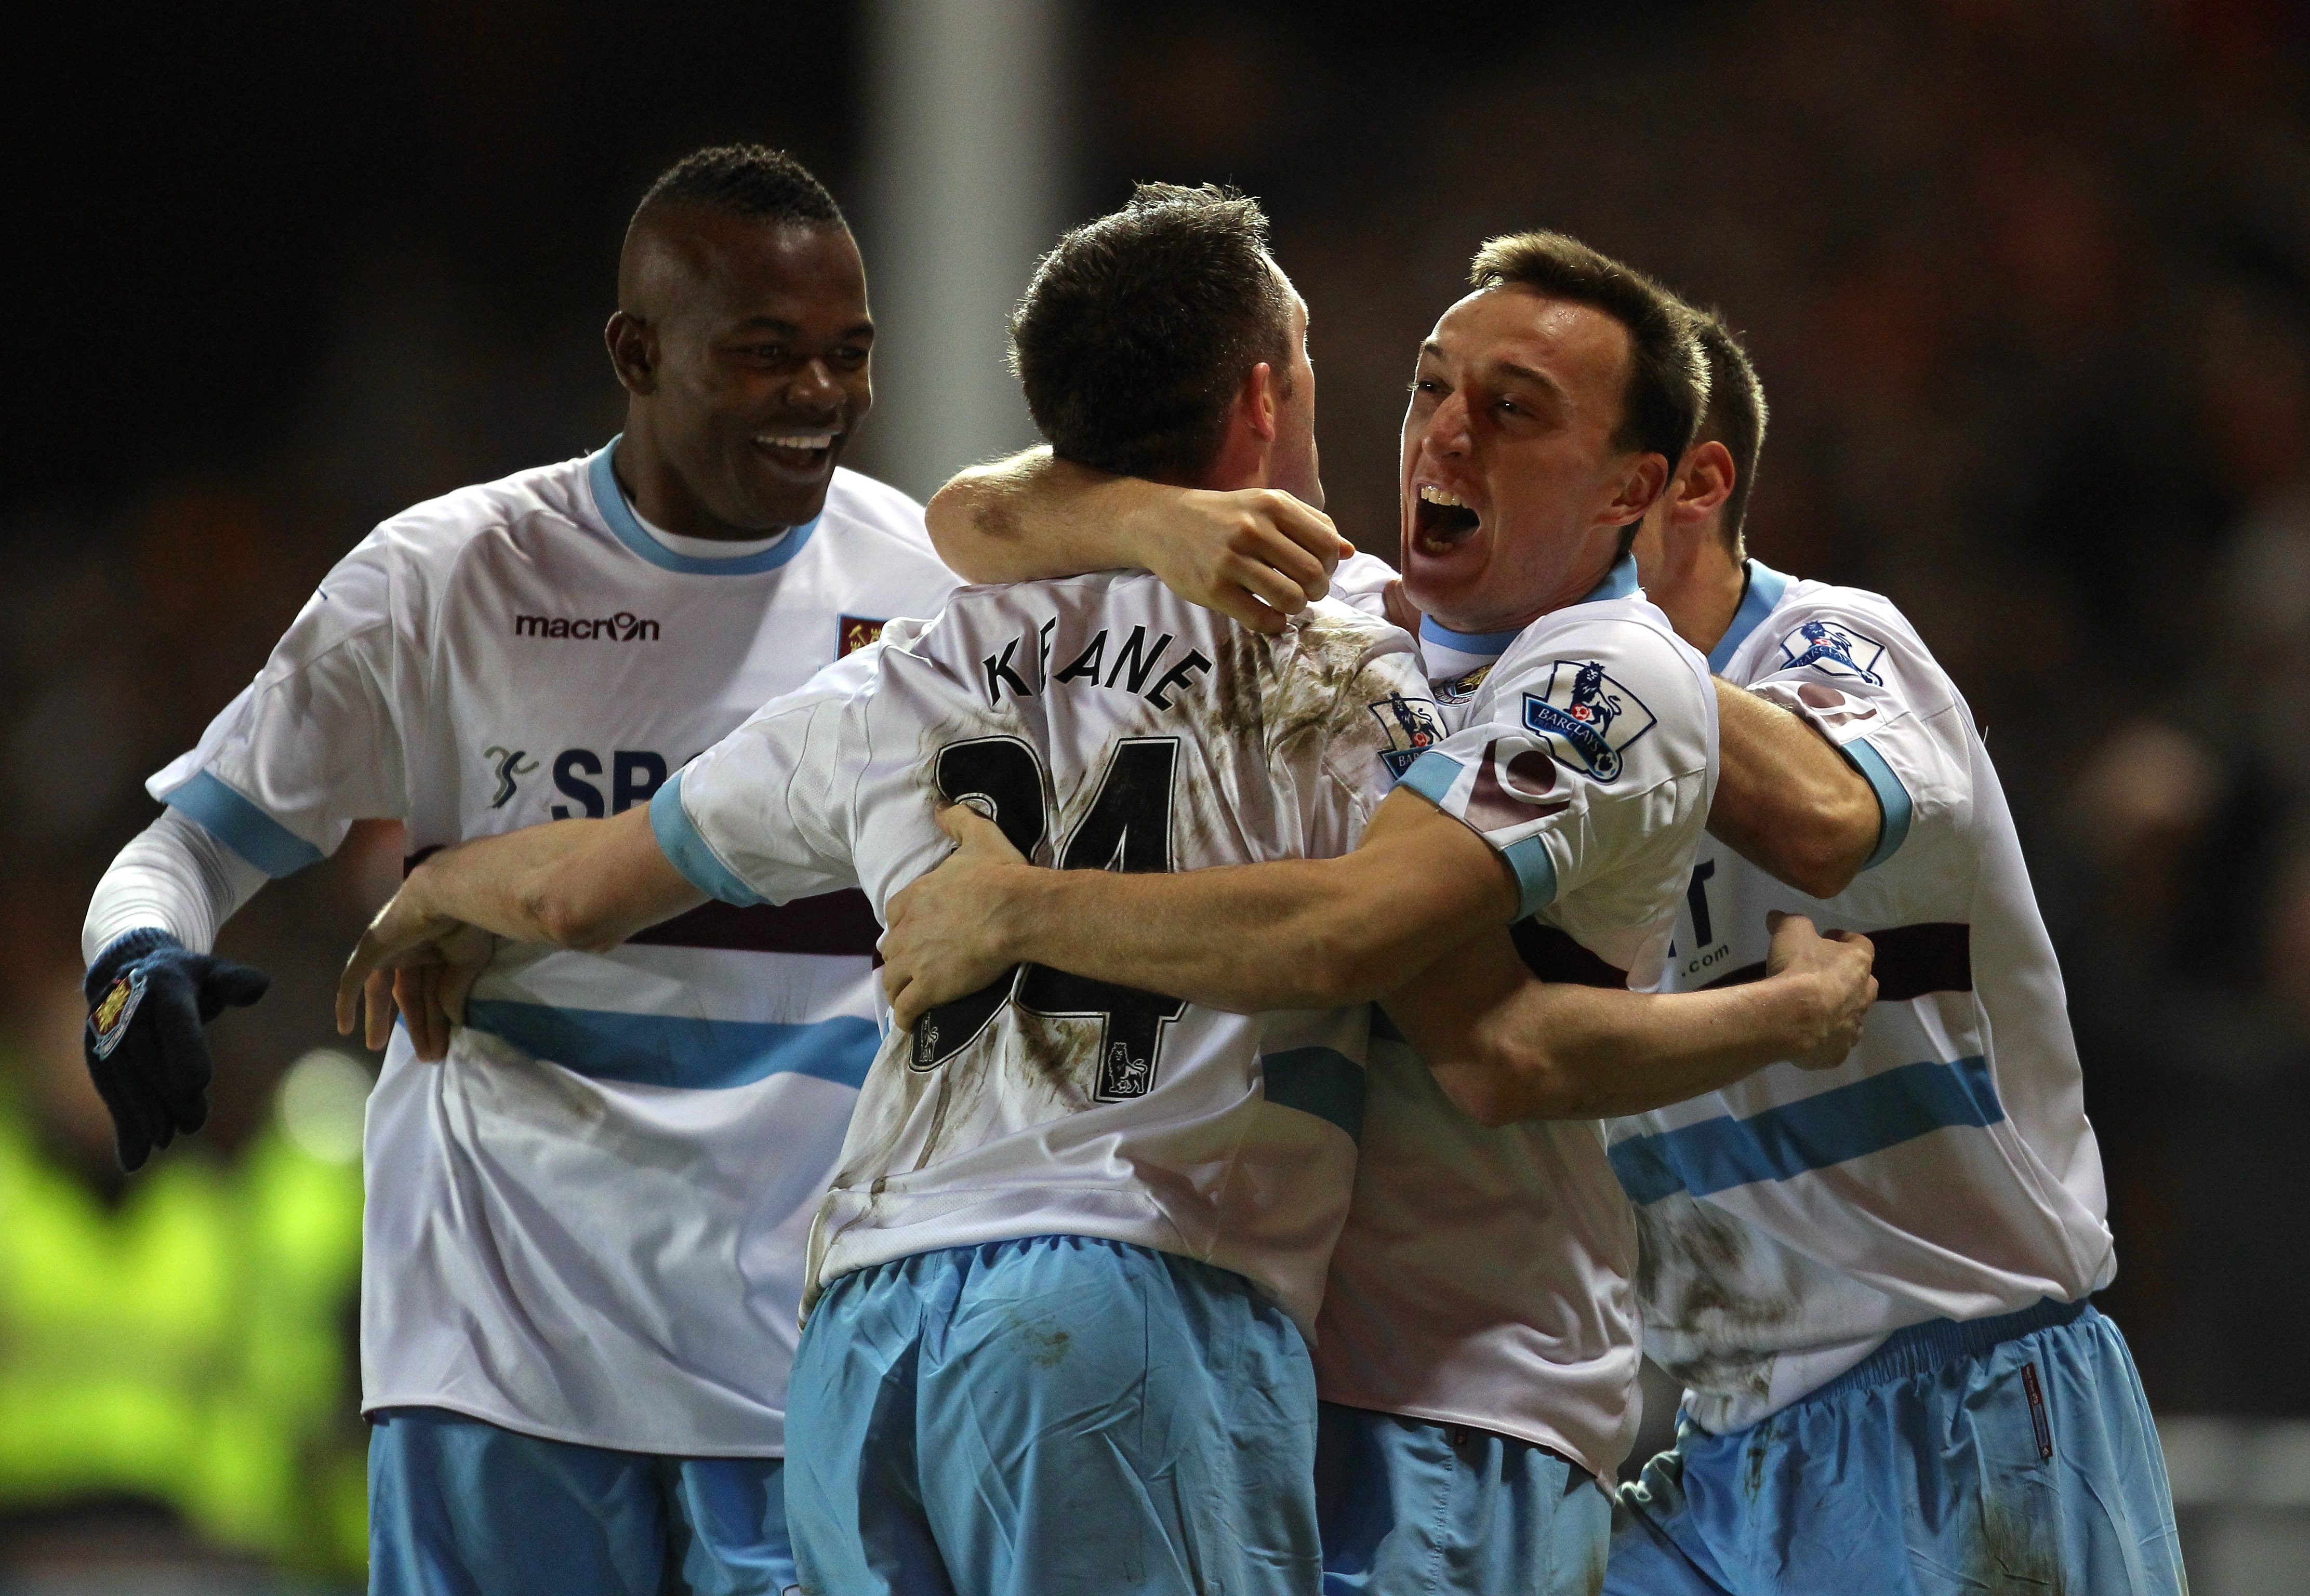 BLACKPOOL, ENGLAND - FEBRUARY 02:  Robbie Keane of West Ham United celebrates with Mark Noble after scoring his goal during the Barclays Premier League match between Blackpool and West Ham United at Bloomfield Road on February 2, 2011 in Blackpool, Englan